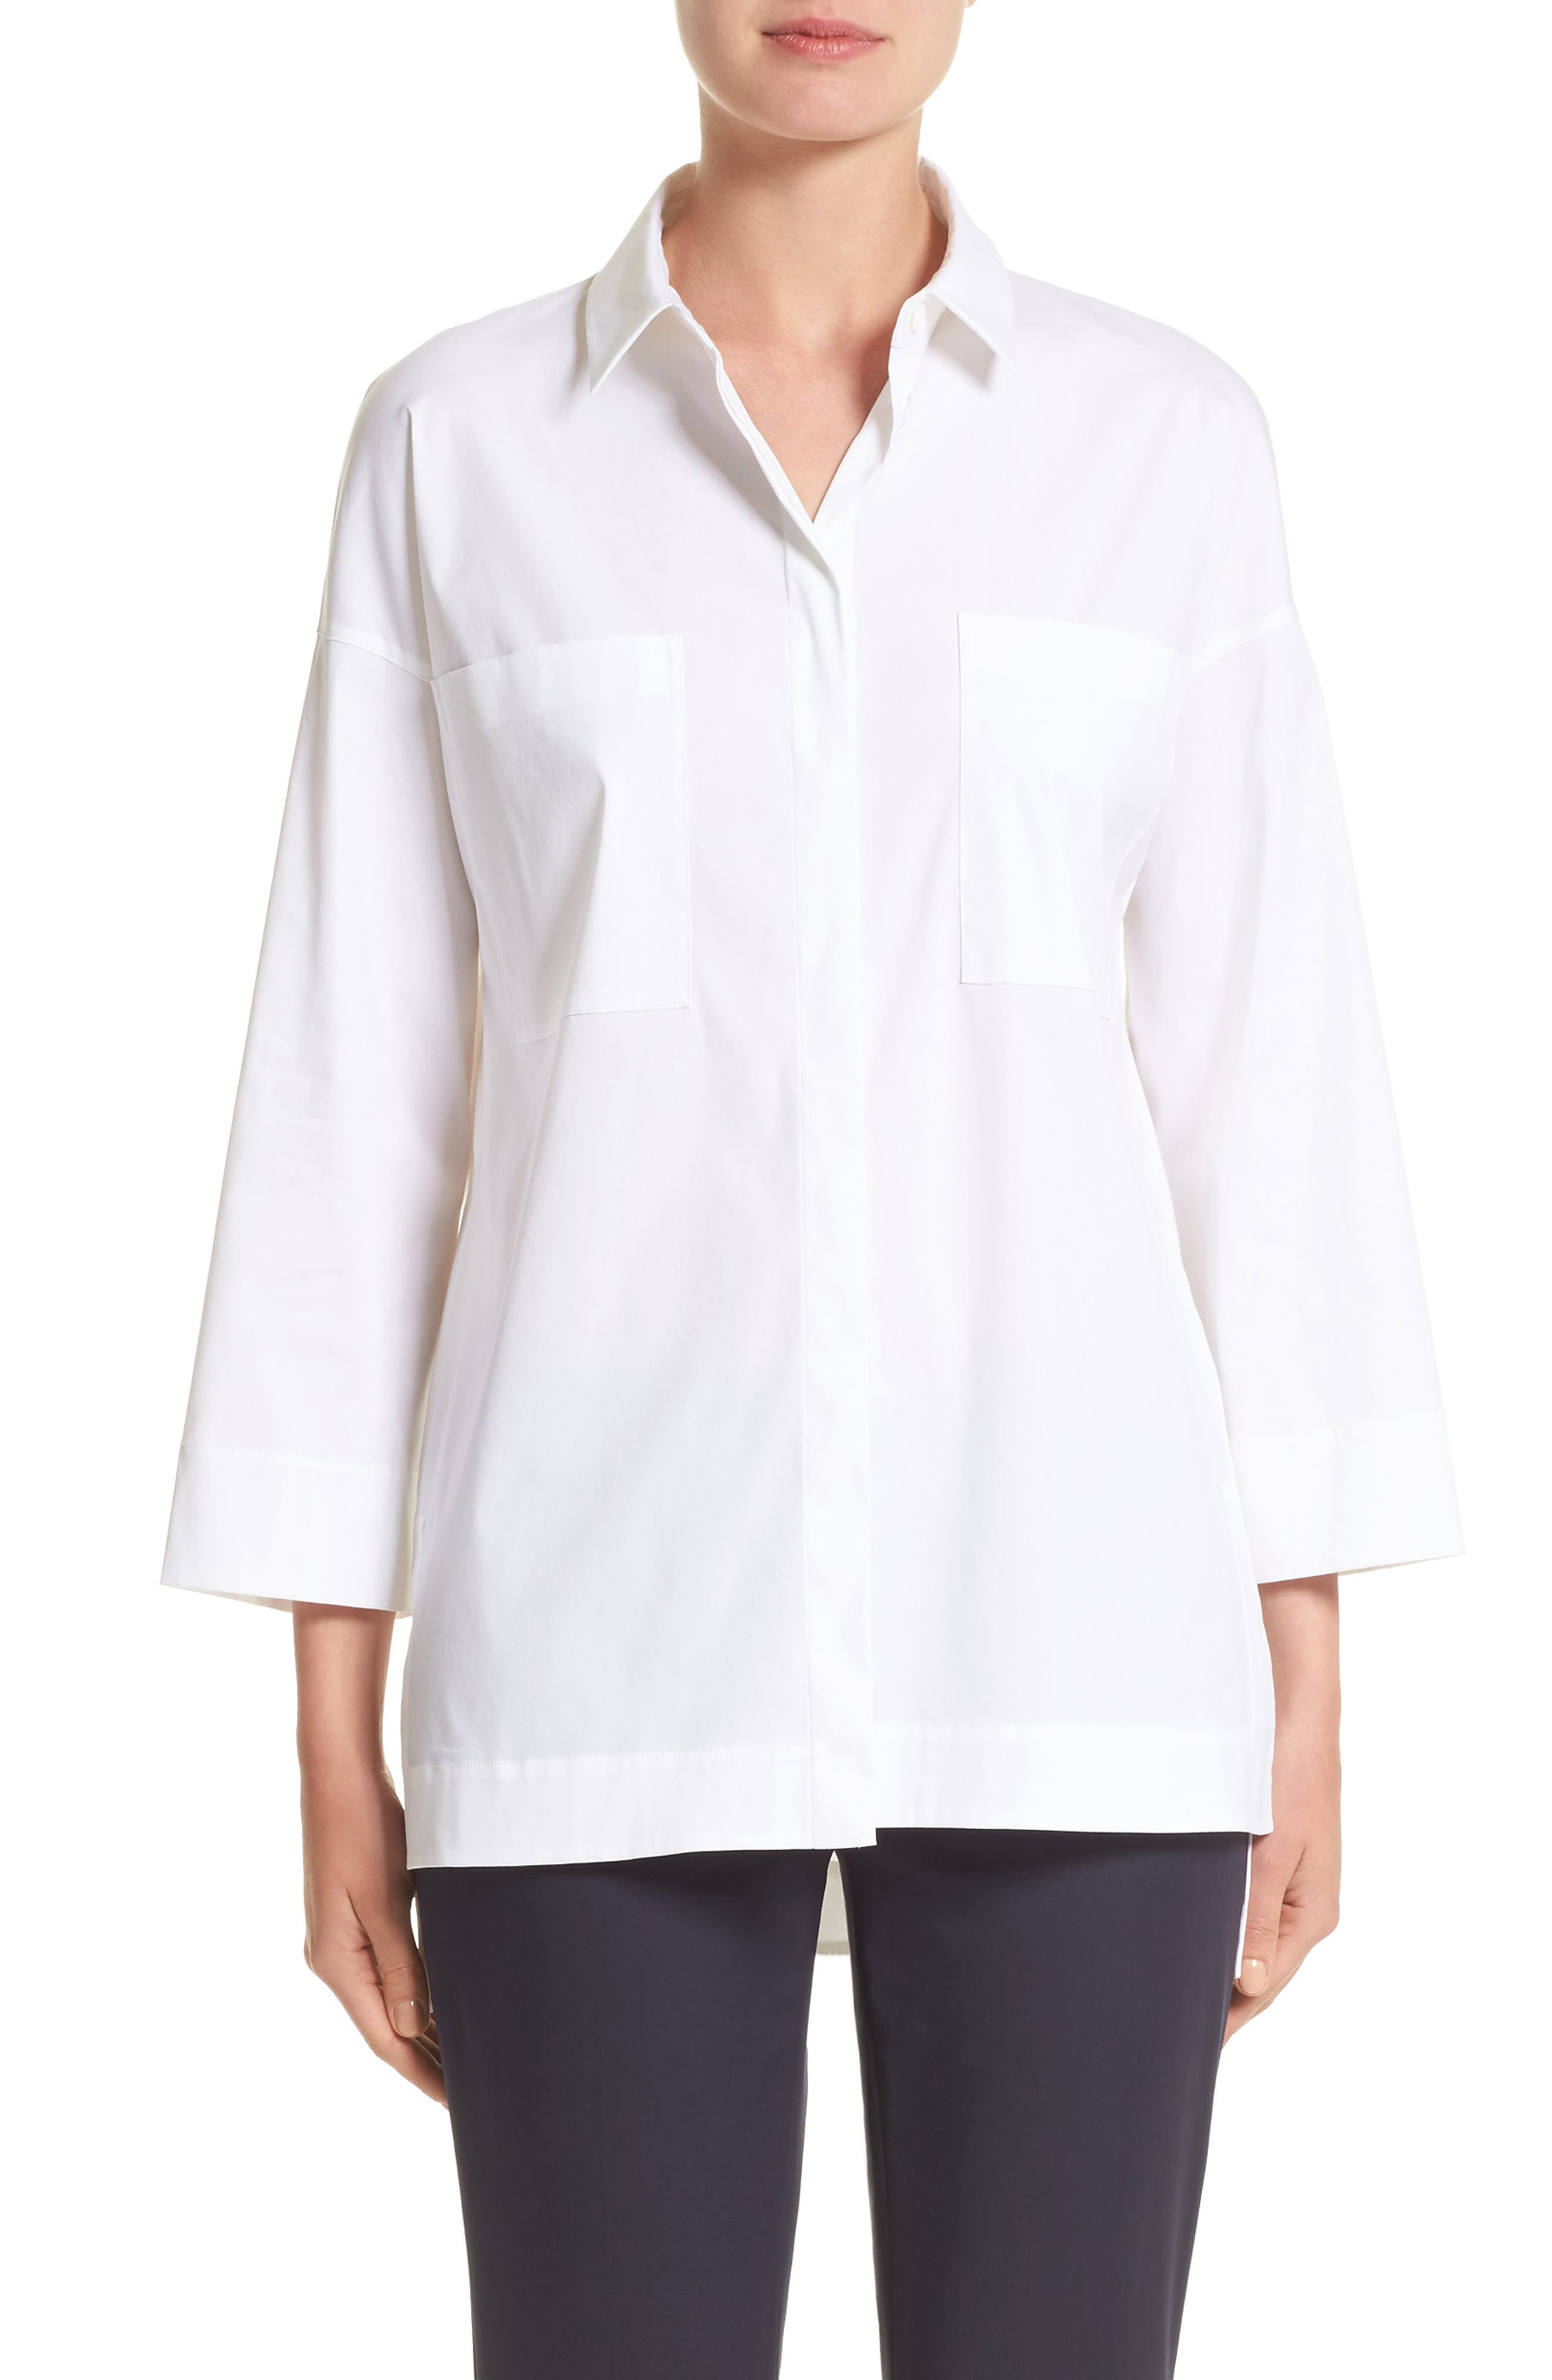 Hensley Blouse,                         Main,                         color, White